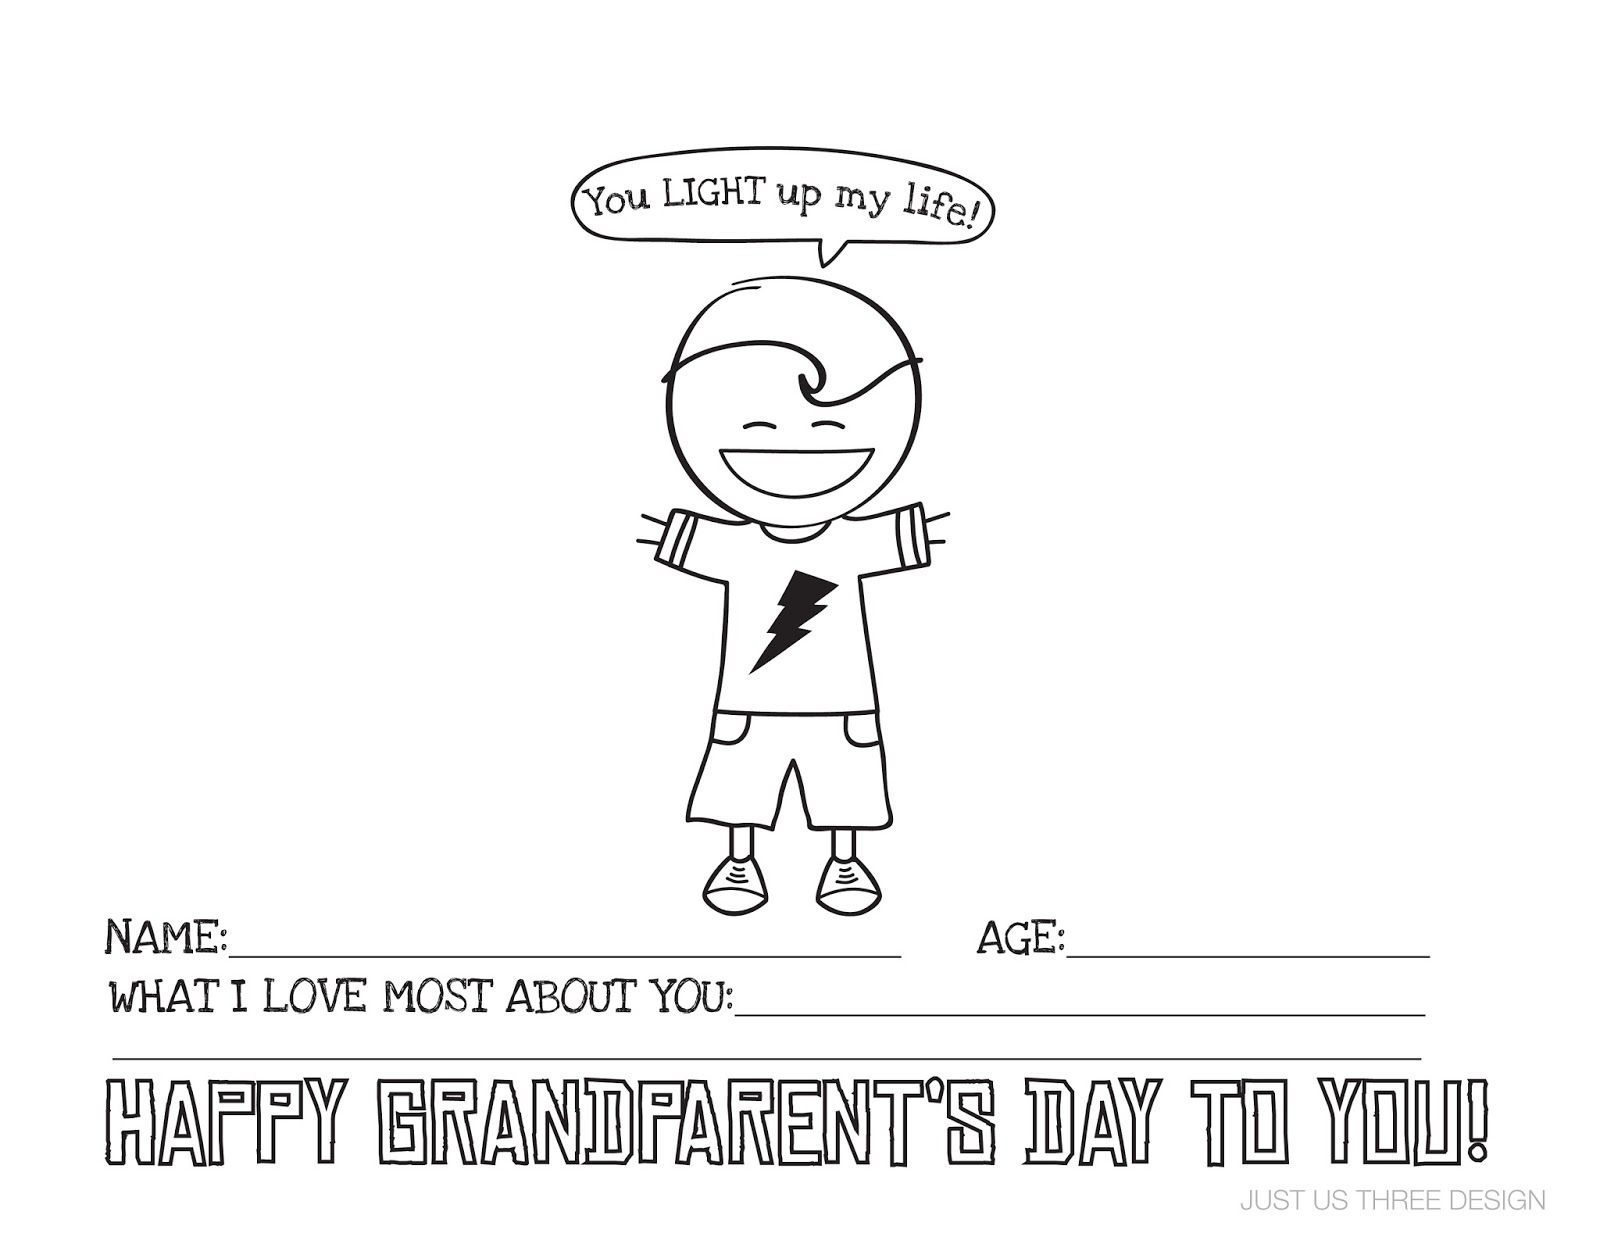 Well our Grandparent's Day cards are out and the big day is fast approaching on Sunday, September 8th! You haven't done anything yet... #grandparentsdaycrafts